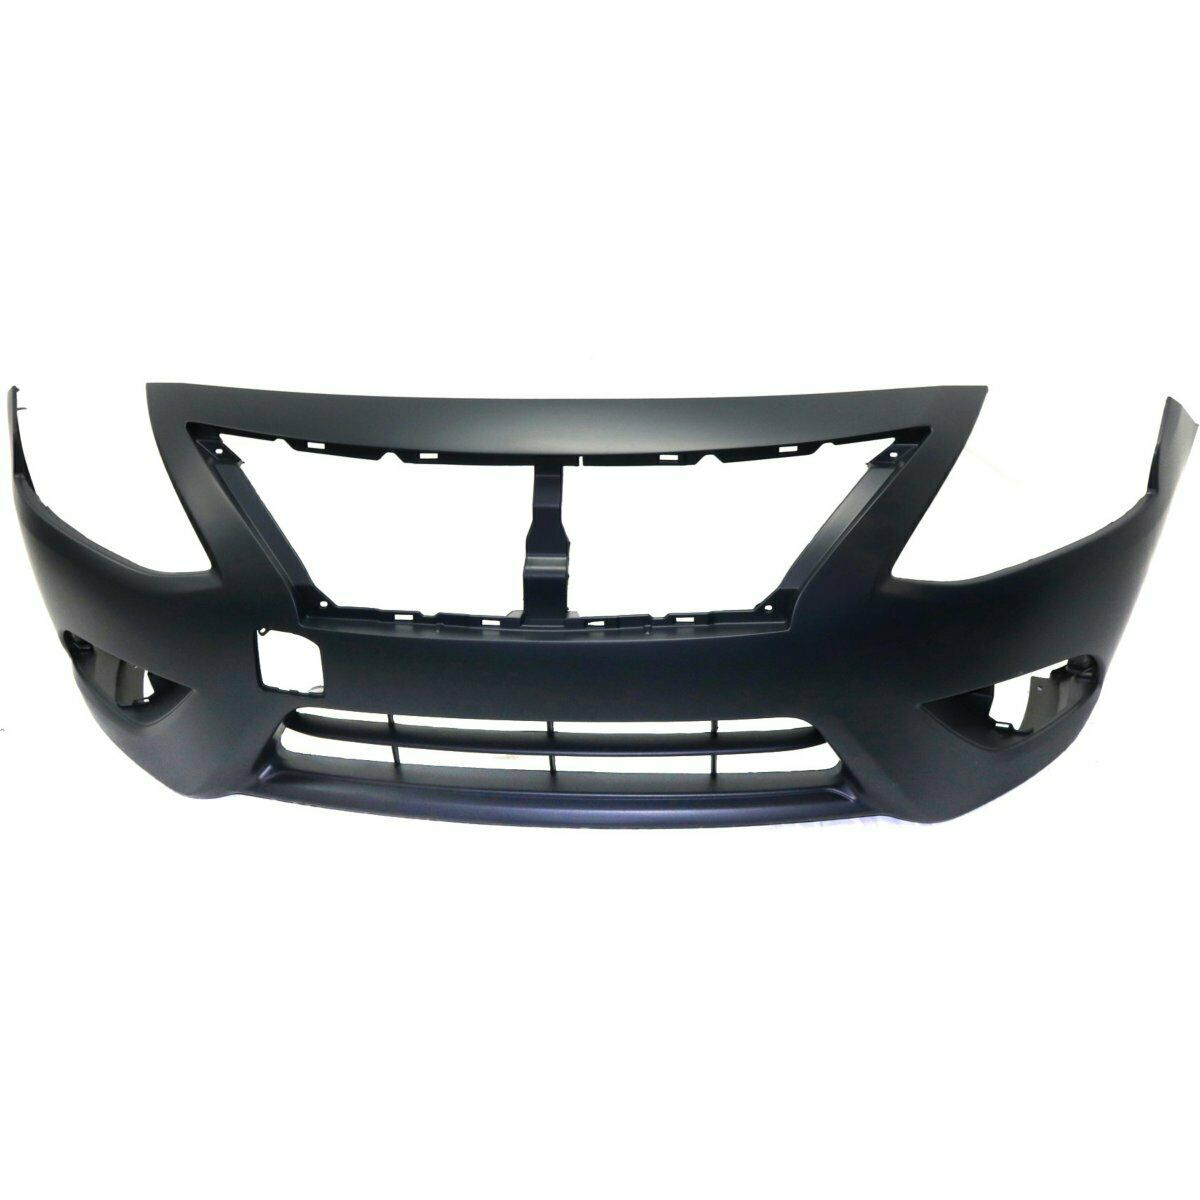 2015-2019 Nissan Versa w/oMldg Hole Front Bumper Painted to Match